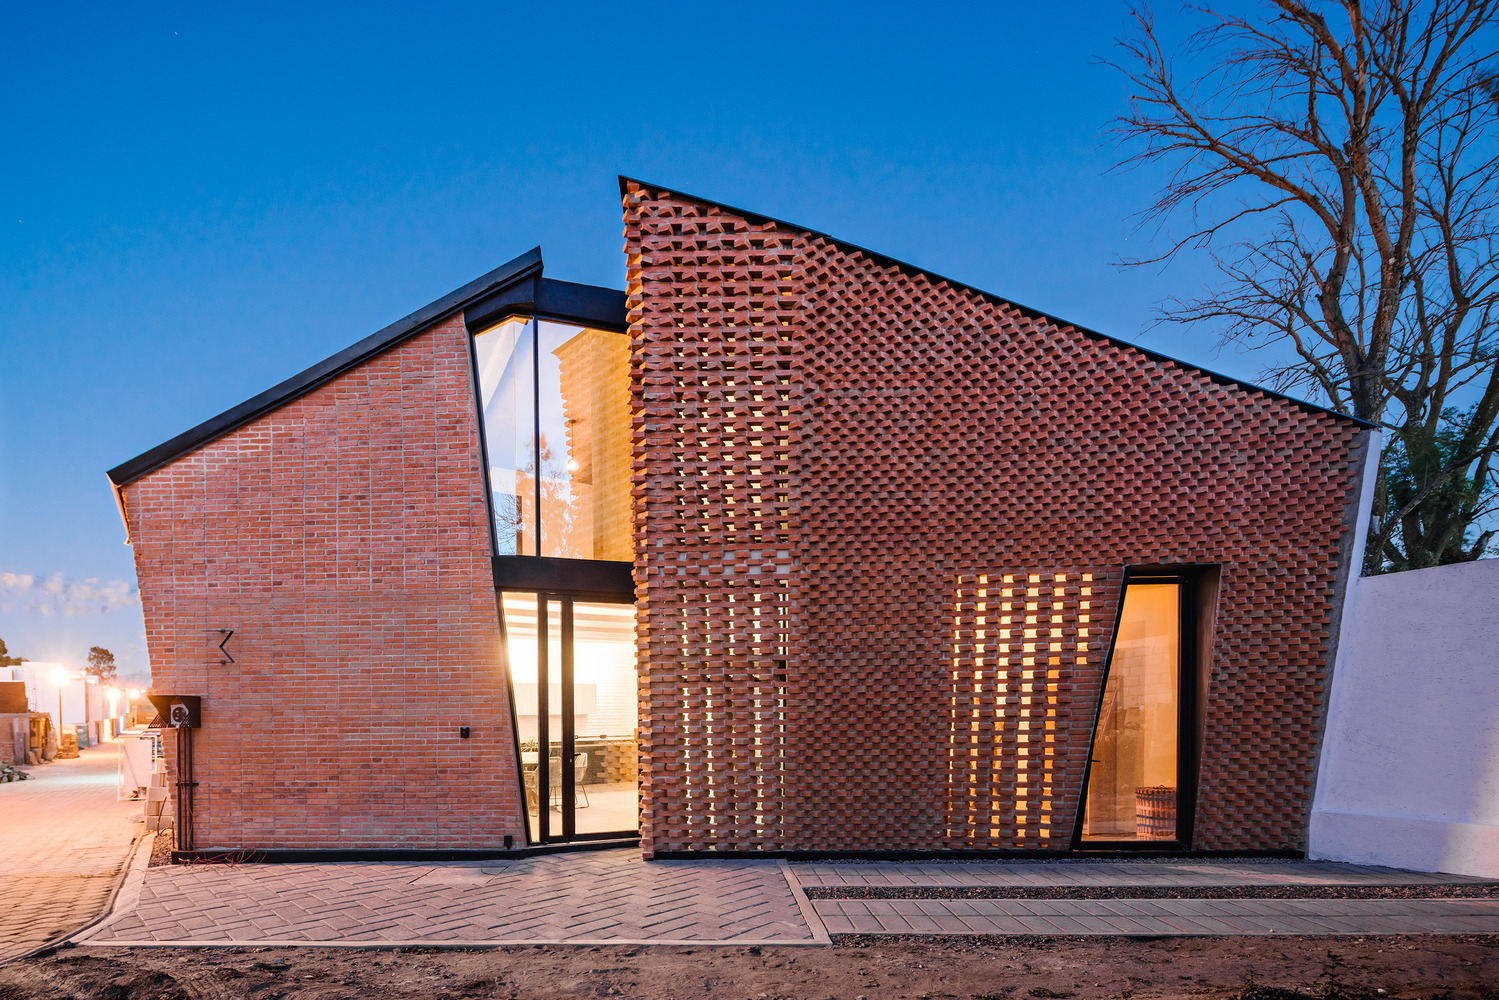 Mexican Houses That Show the Many Ways to Use Bricks